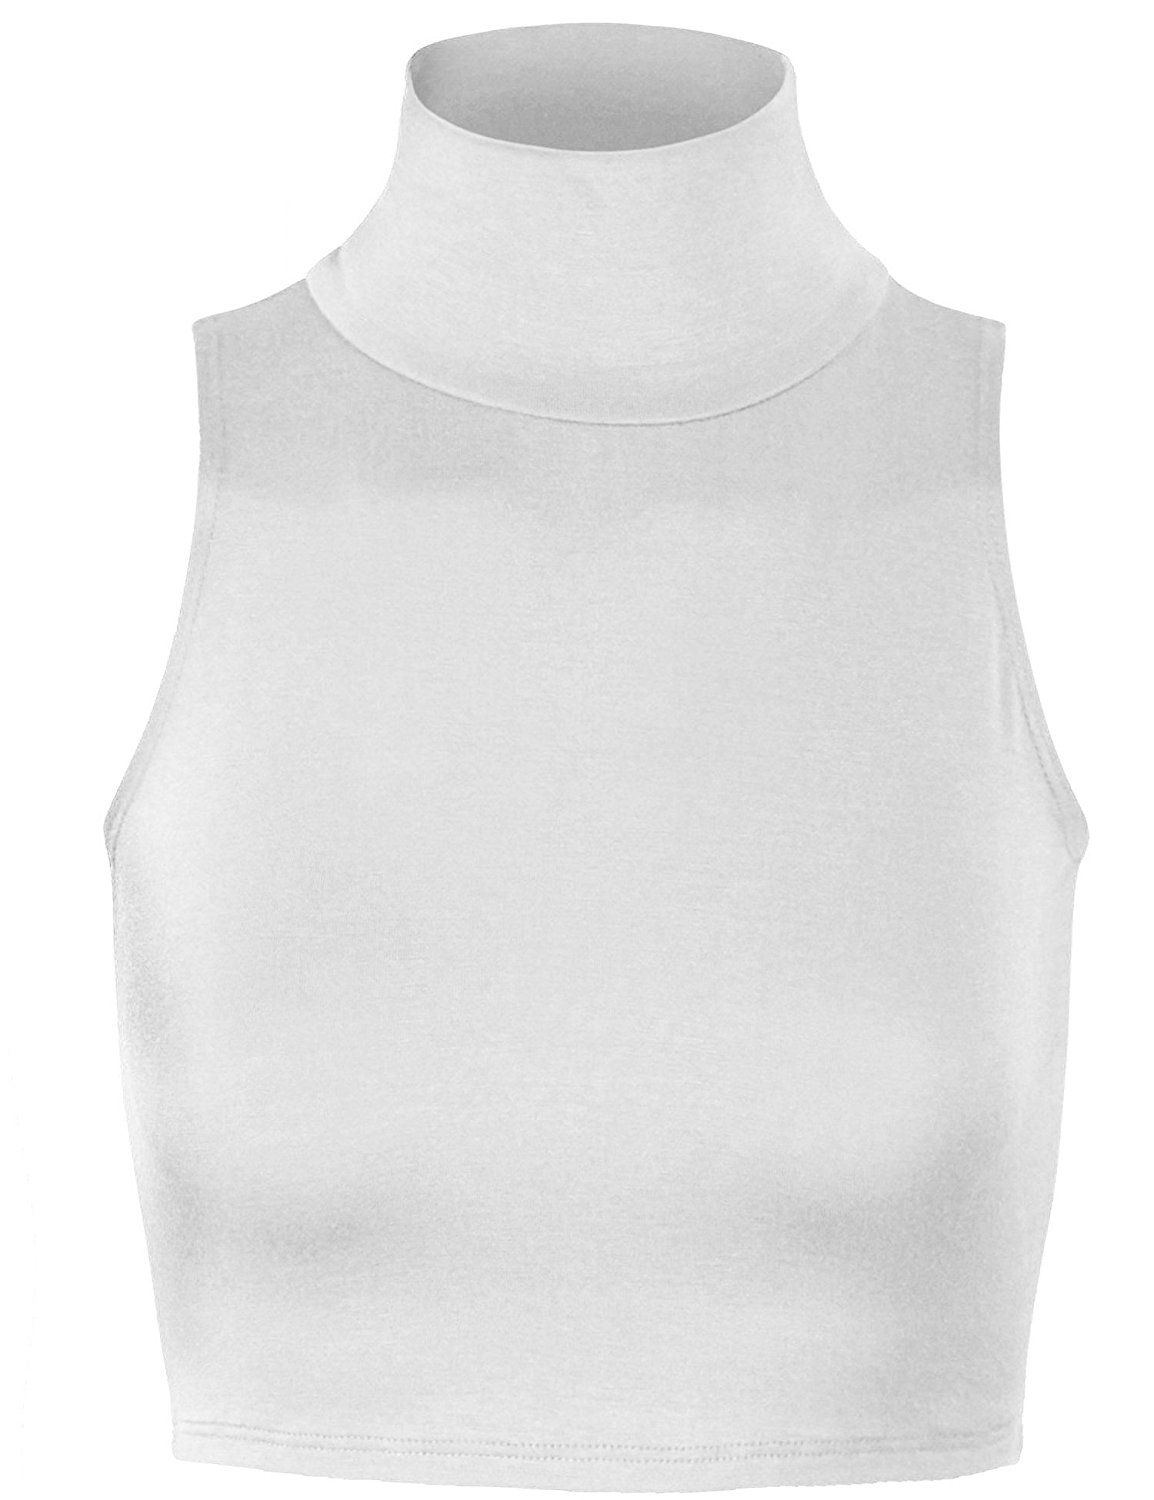 bcd3109dfcf88 KOGMO Women s Lightweight Fitted Sleeveless Turtleneck Crop Top With  Stretch-M-White at Amazon Women s Clothing store